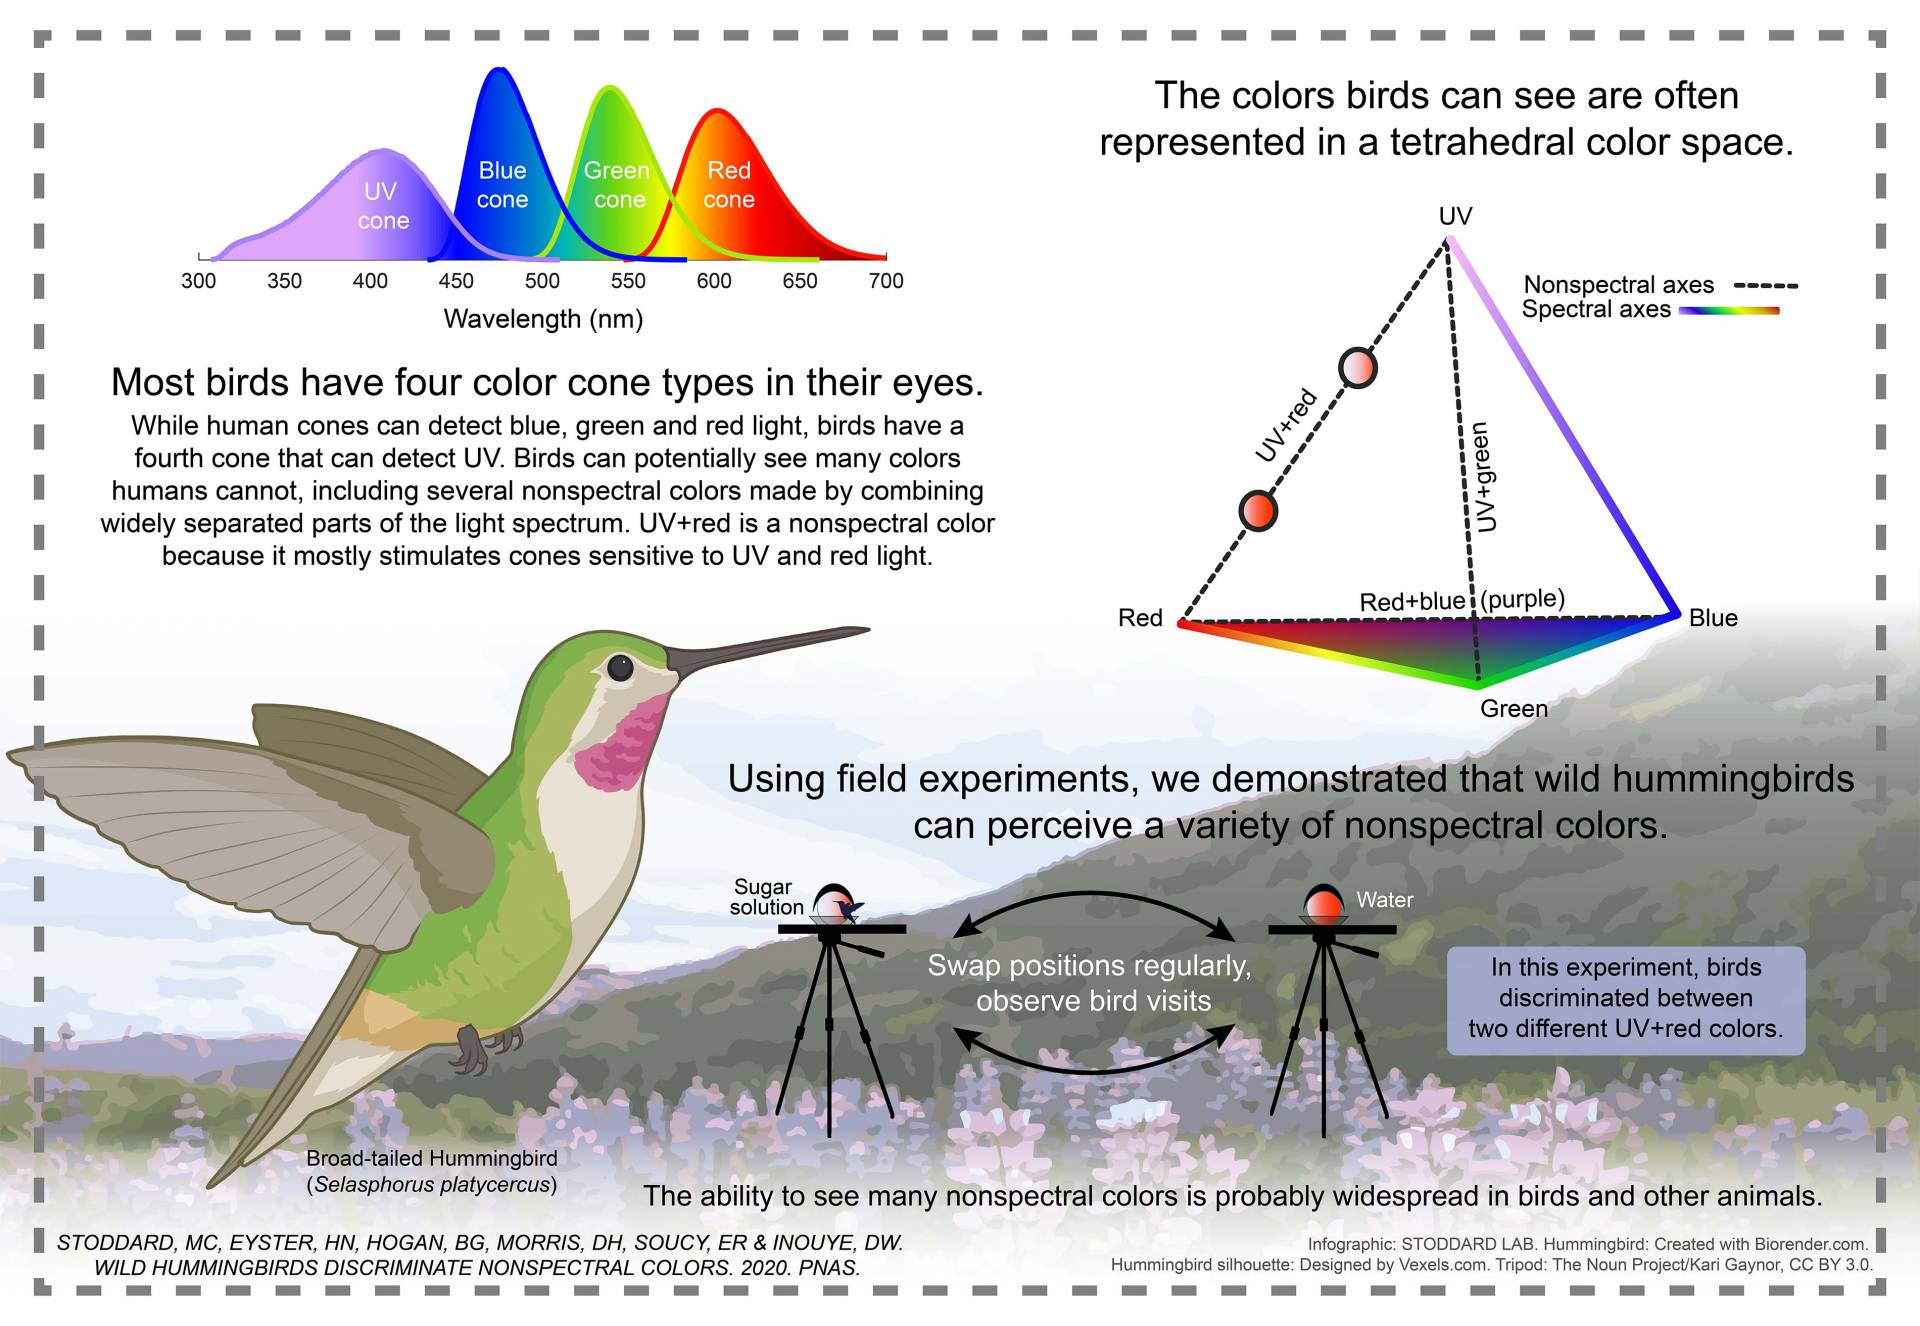 Most birds have 4 color cone types in their eyes. While human cones can detect blue, green, and red light, birds have a fourth cone that can detect UV. Birds can potentially see many colors humans cannot, including several nonspectral colors made by combining widely separated parts of the light spectrum. UV+red is a nonspectral color because it mostly stimulates cones sensitive to UV and red light. Using field experiments, we demonstrated that wild hummingbirds can perceive a variety of nonspectral colors.